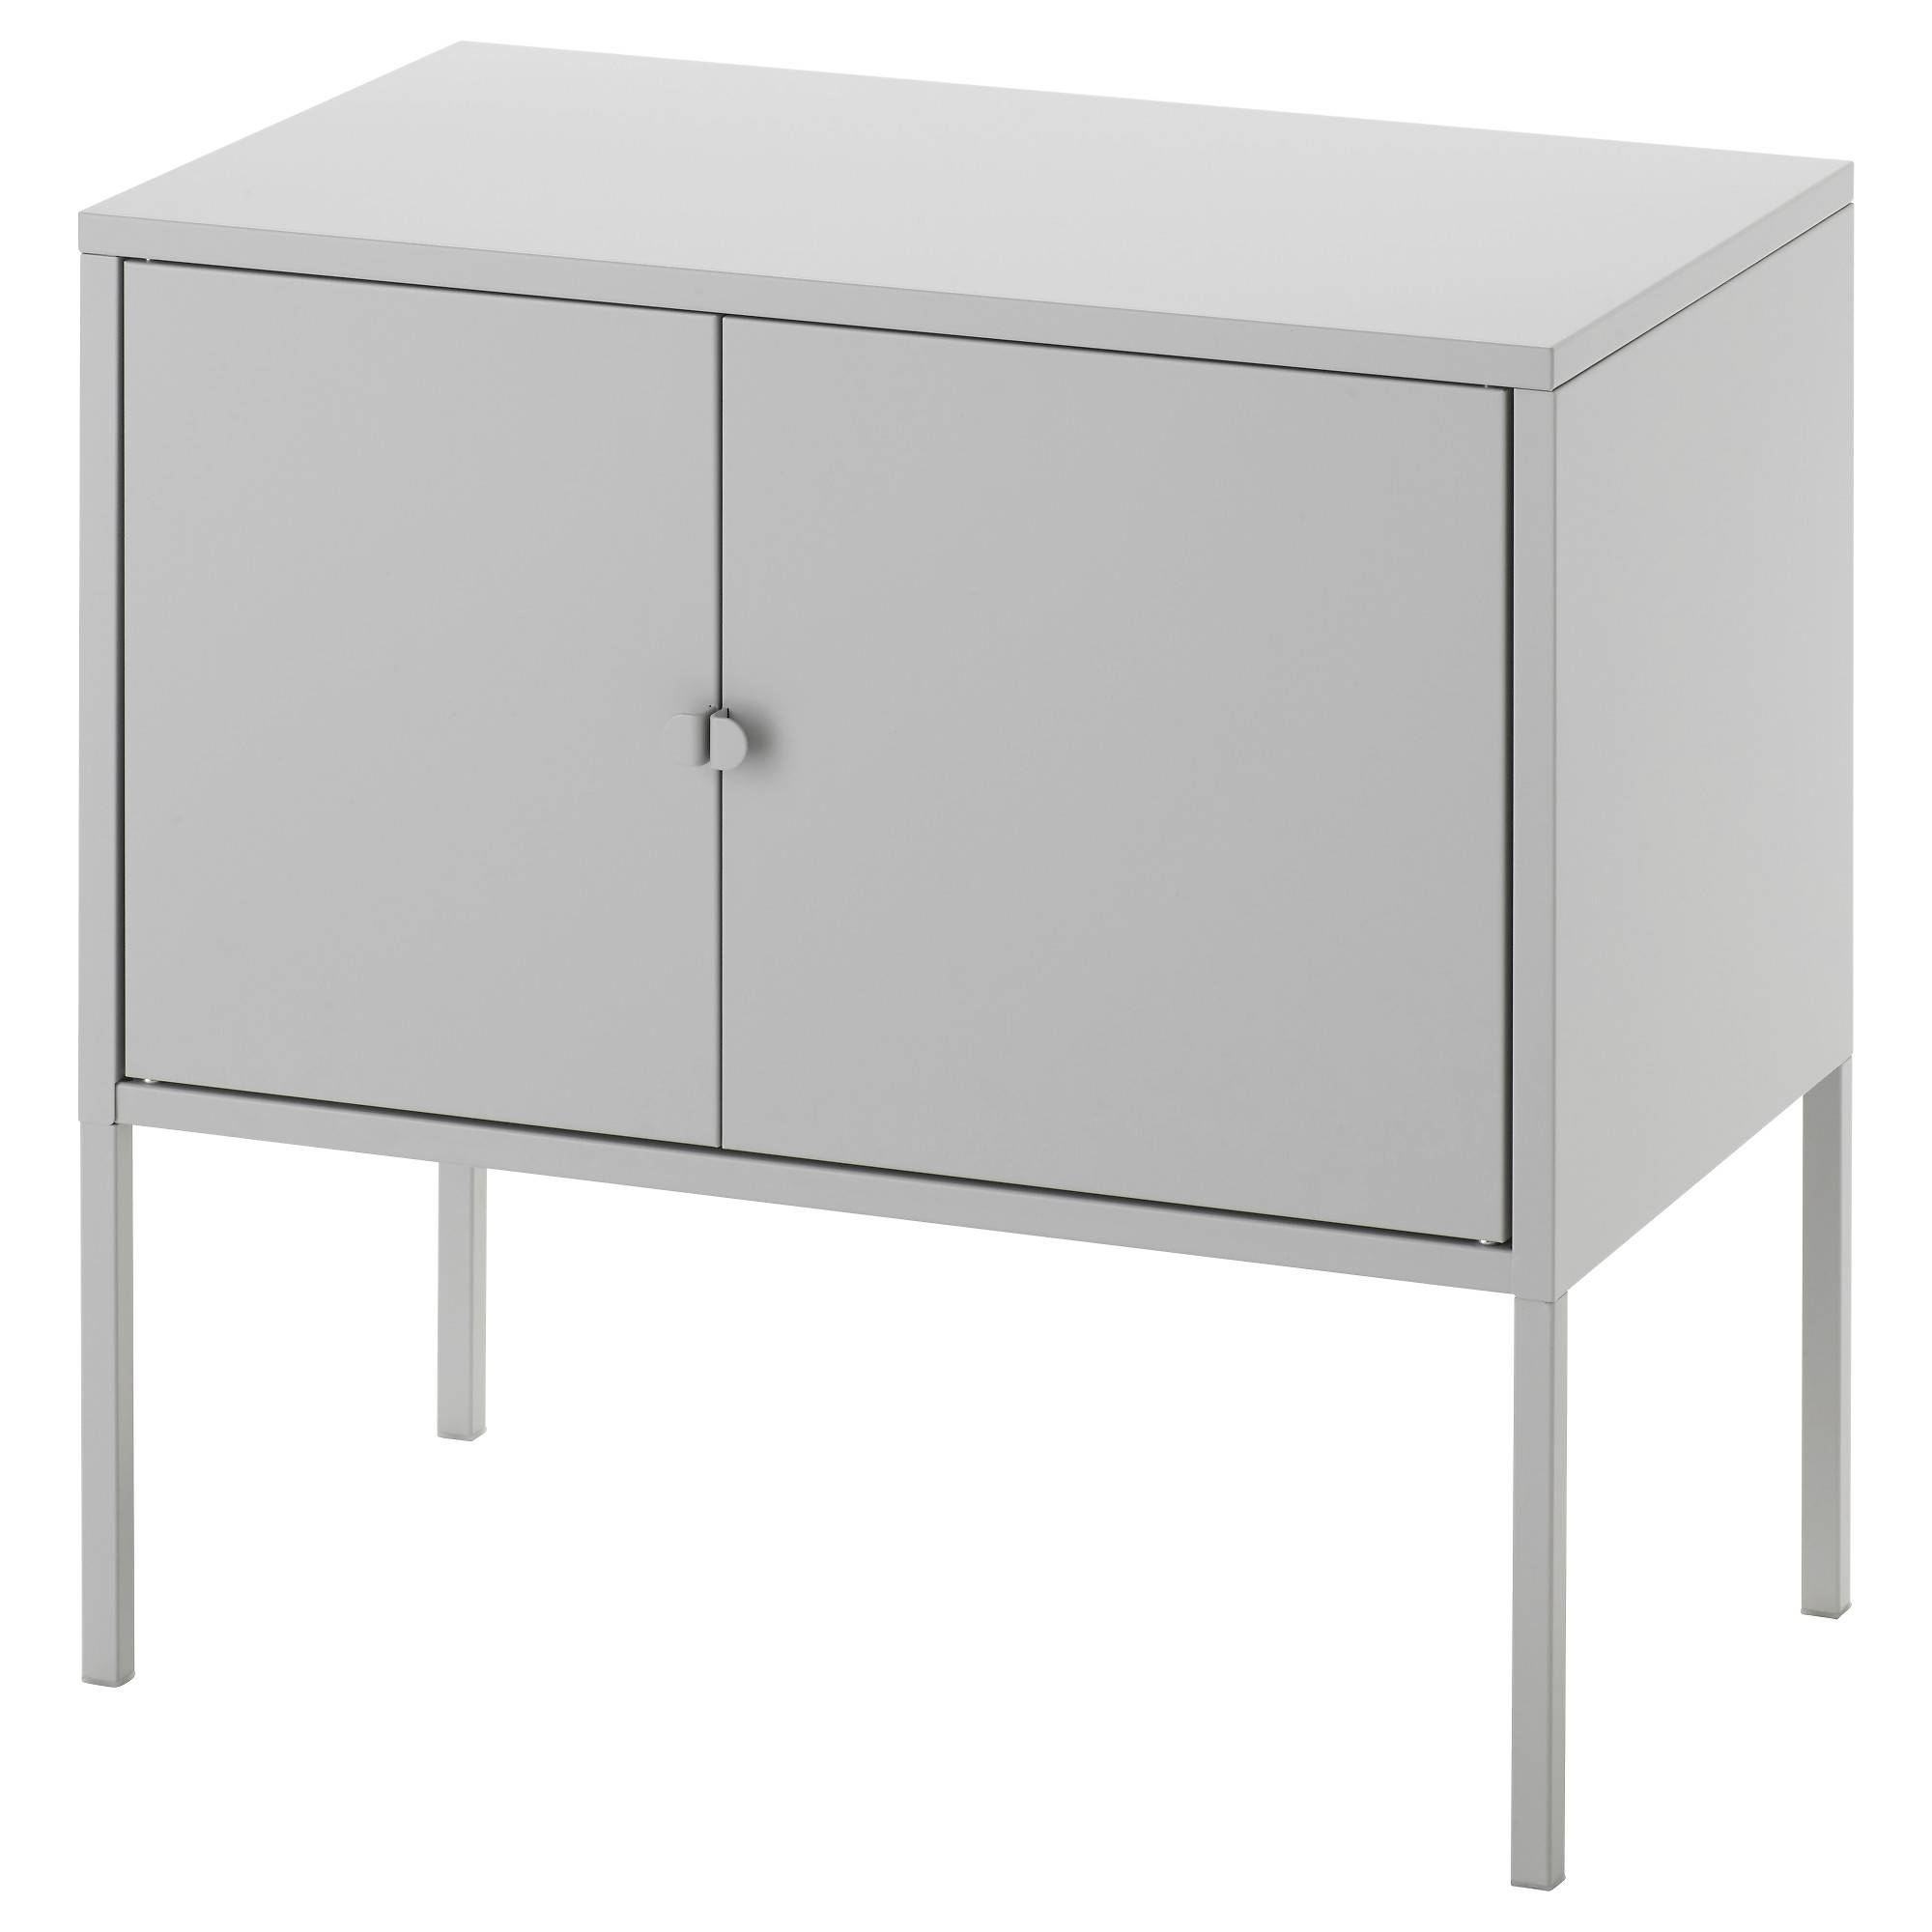 Cabinets & Sideboards - Ikea with regard to White Sideboard Cabinets (Image 10 of 30)